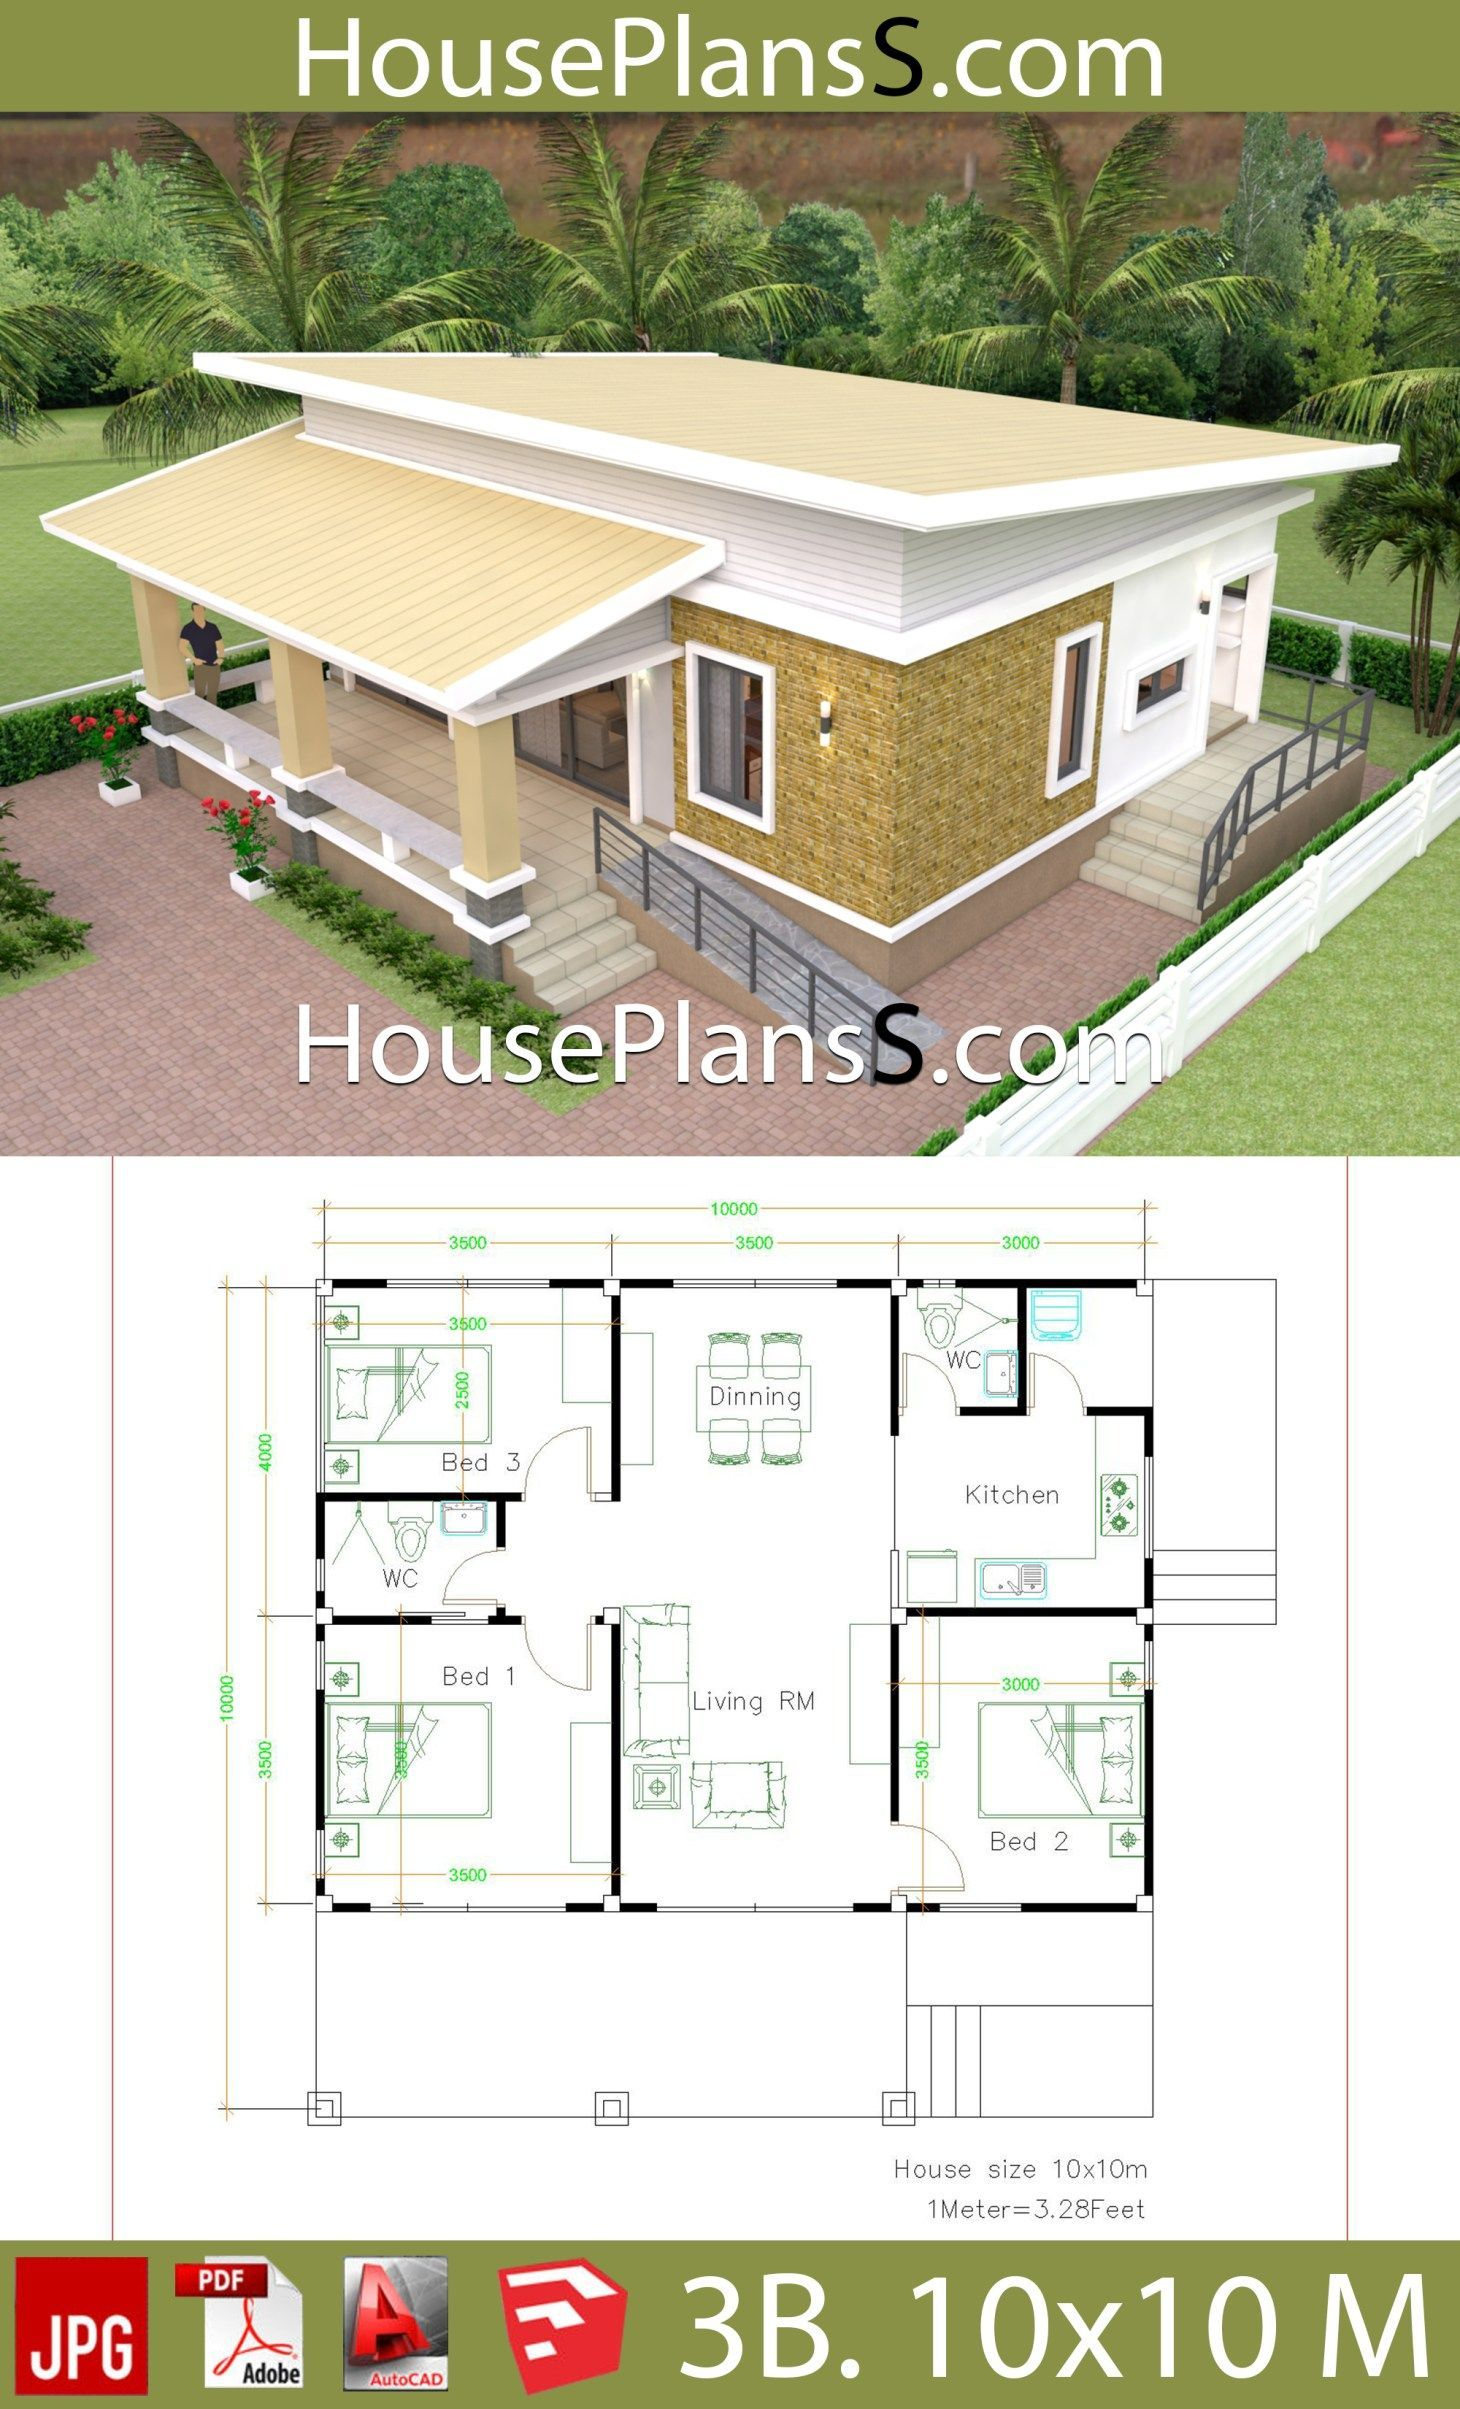 House Design Affordable House Design Plans 10x10 With 3 Bedrooms Full Interior House Small House Design Plans House Construction Plan Affordable House Plans